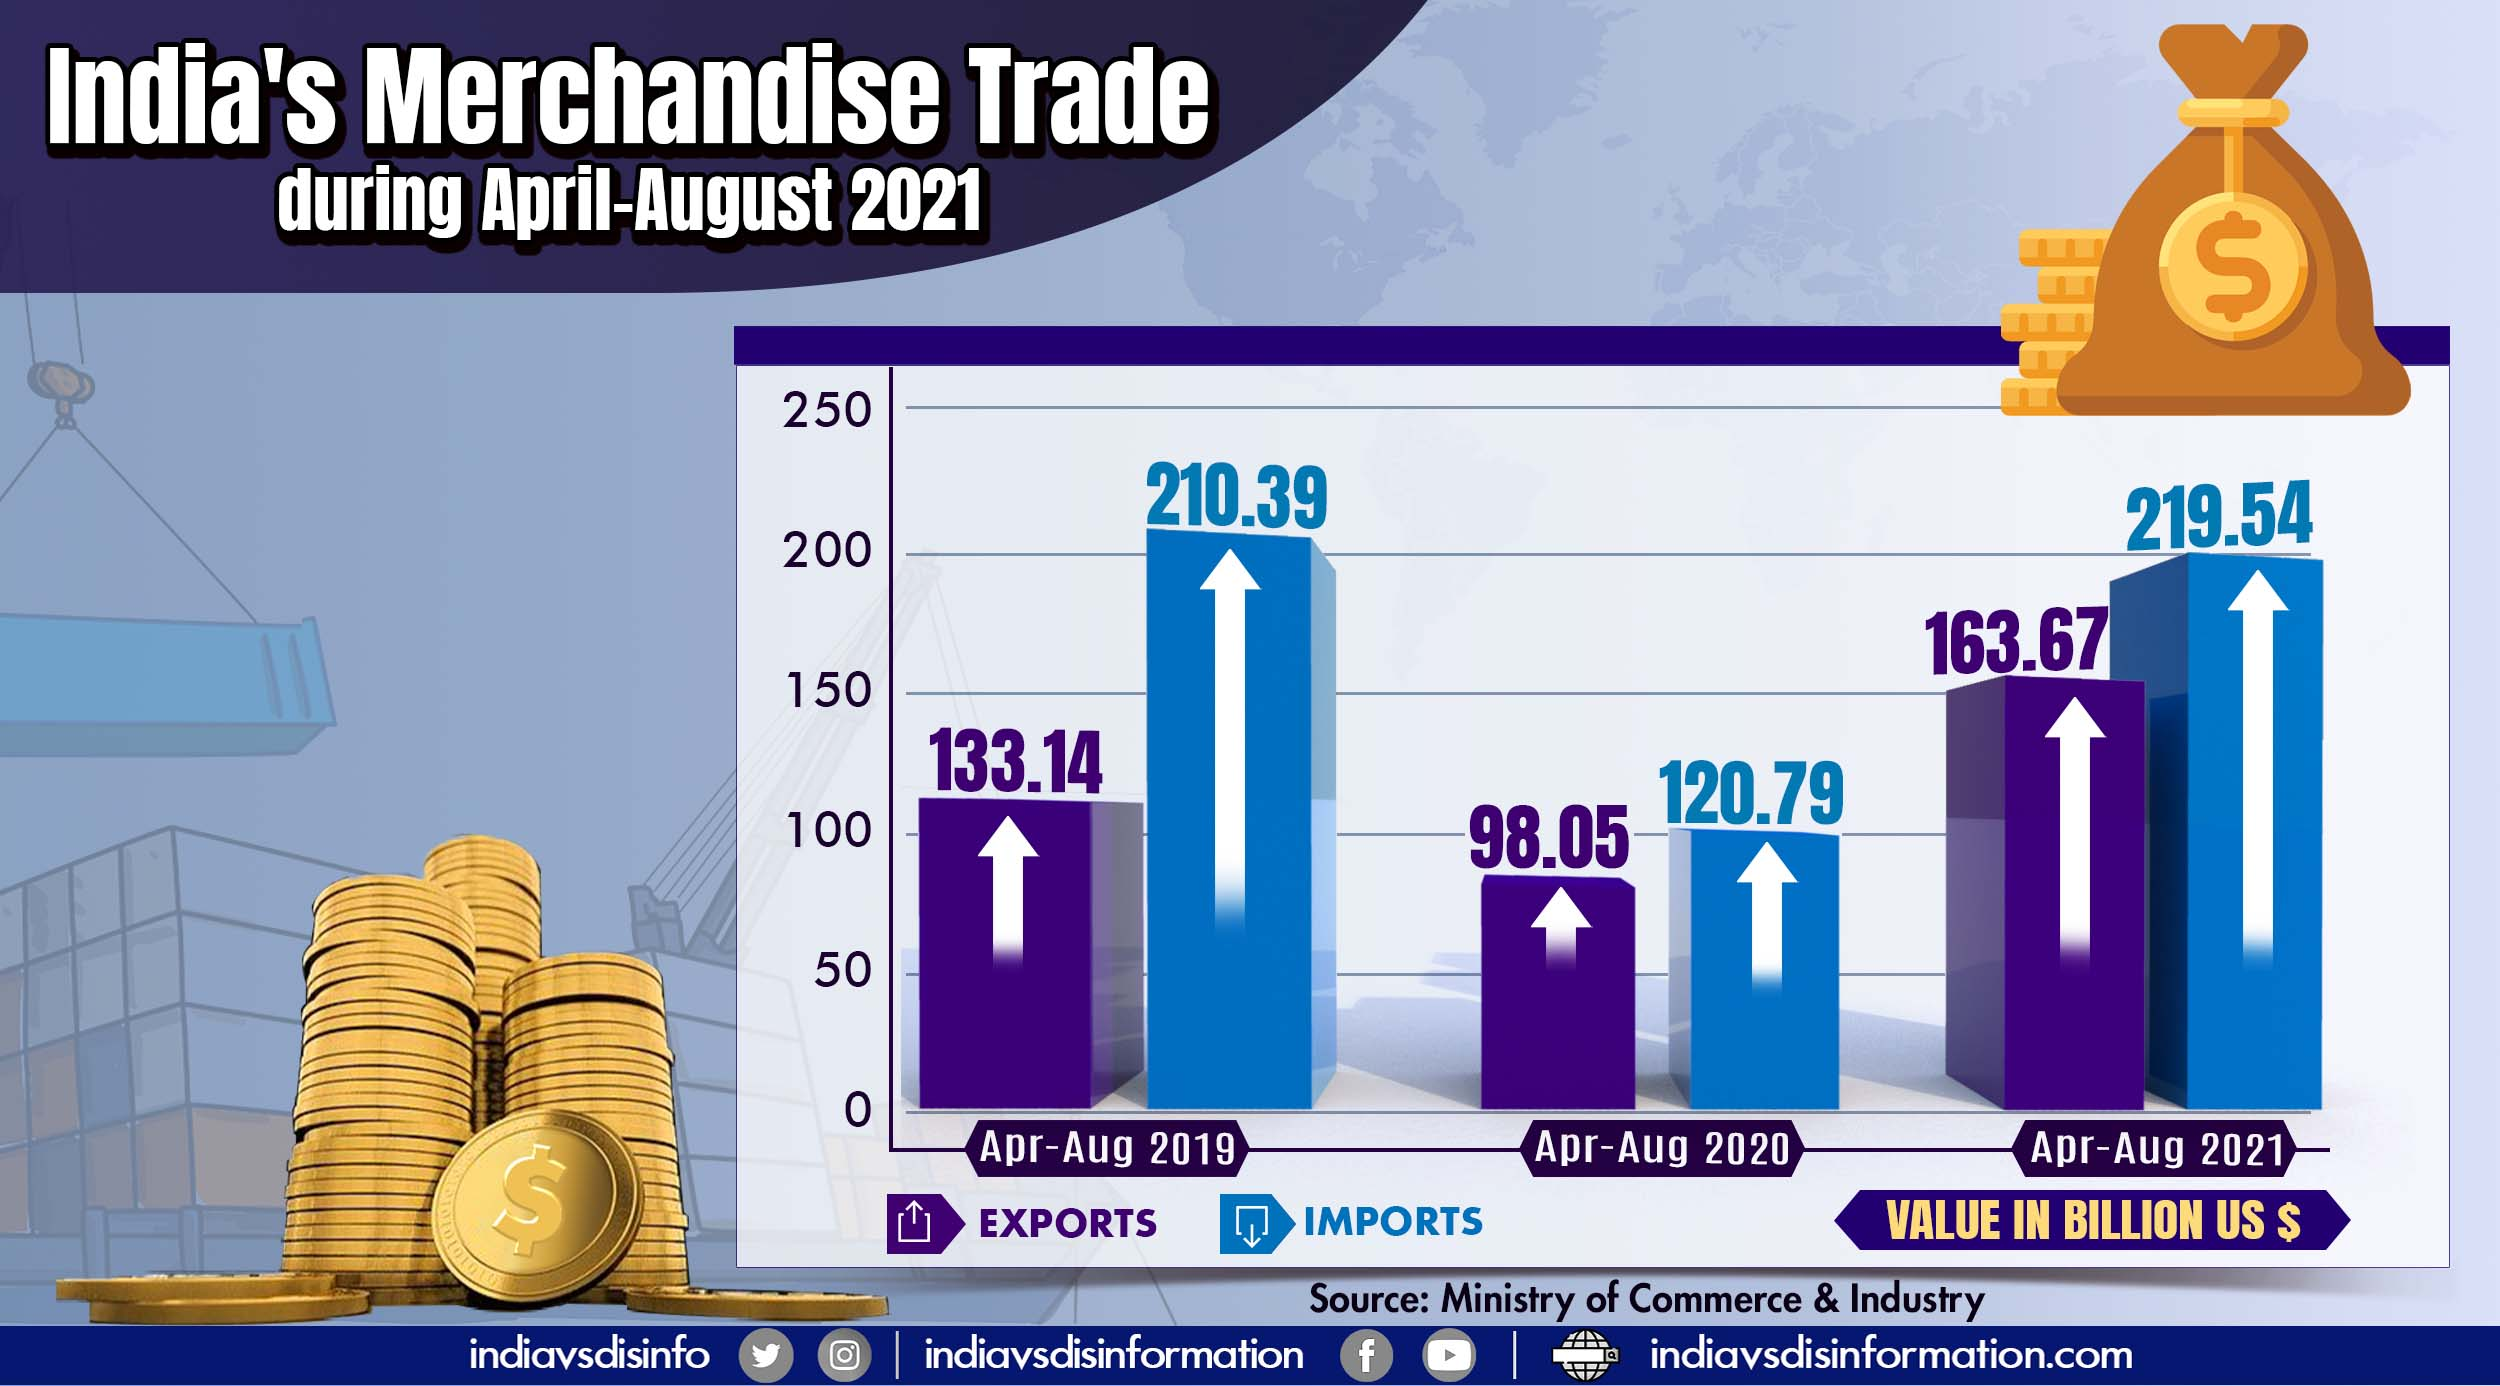 India achieves USD 163.67 billion merchandise exports in April-August 2021